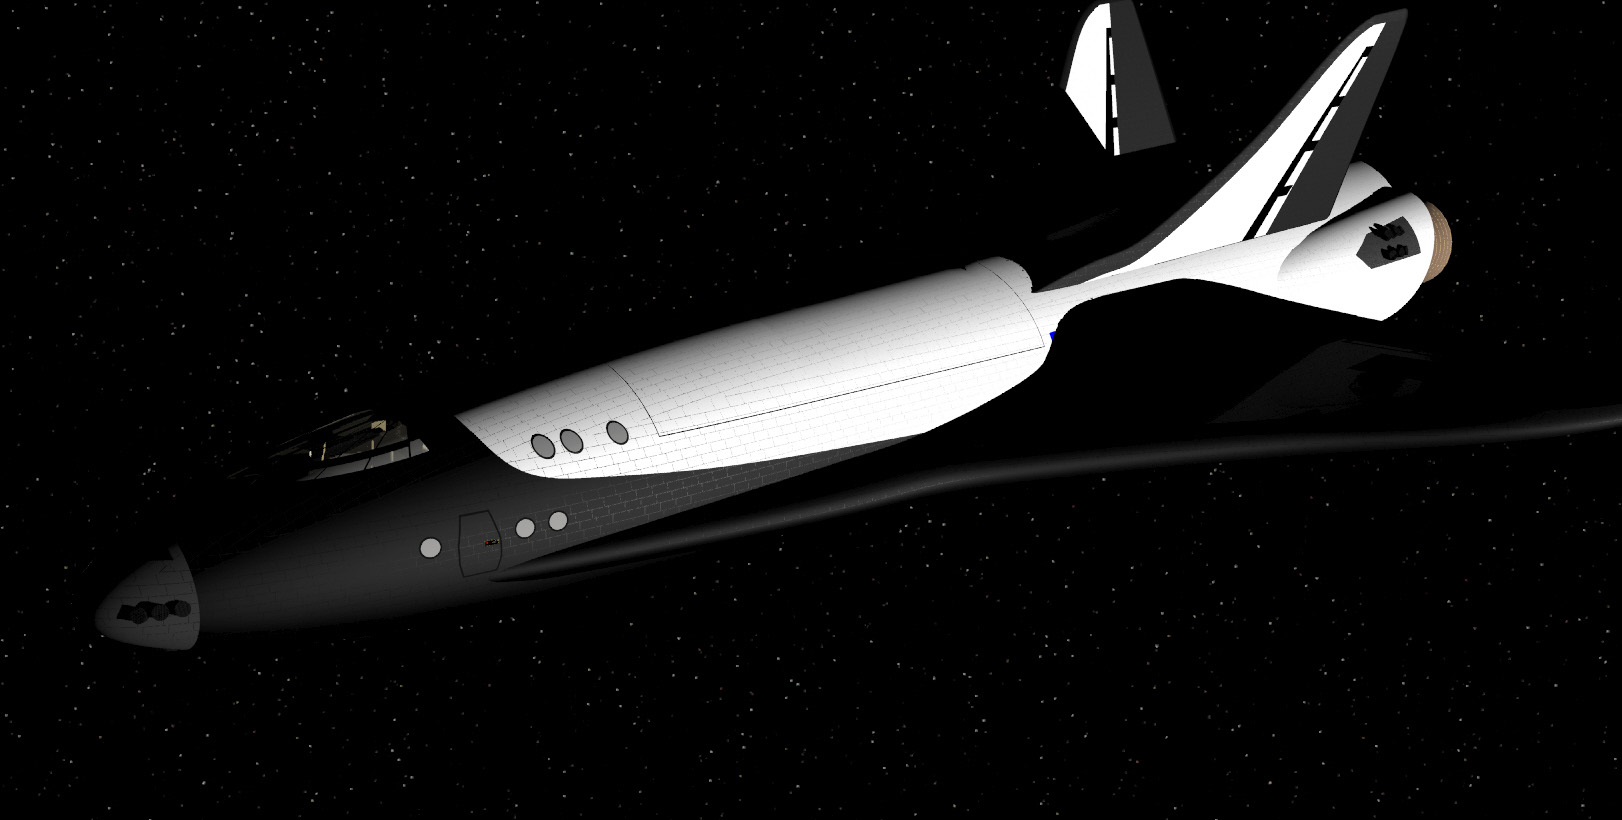 space shuttle vehicles - photo #32